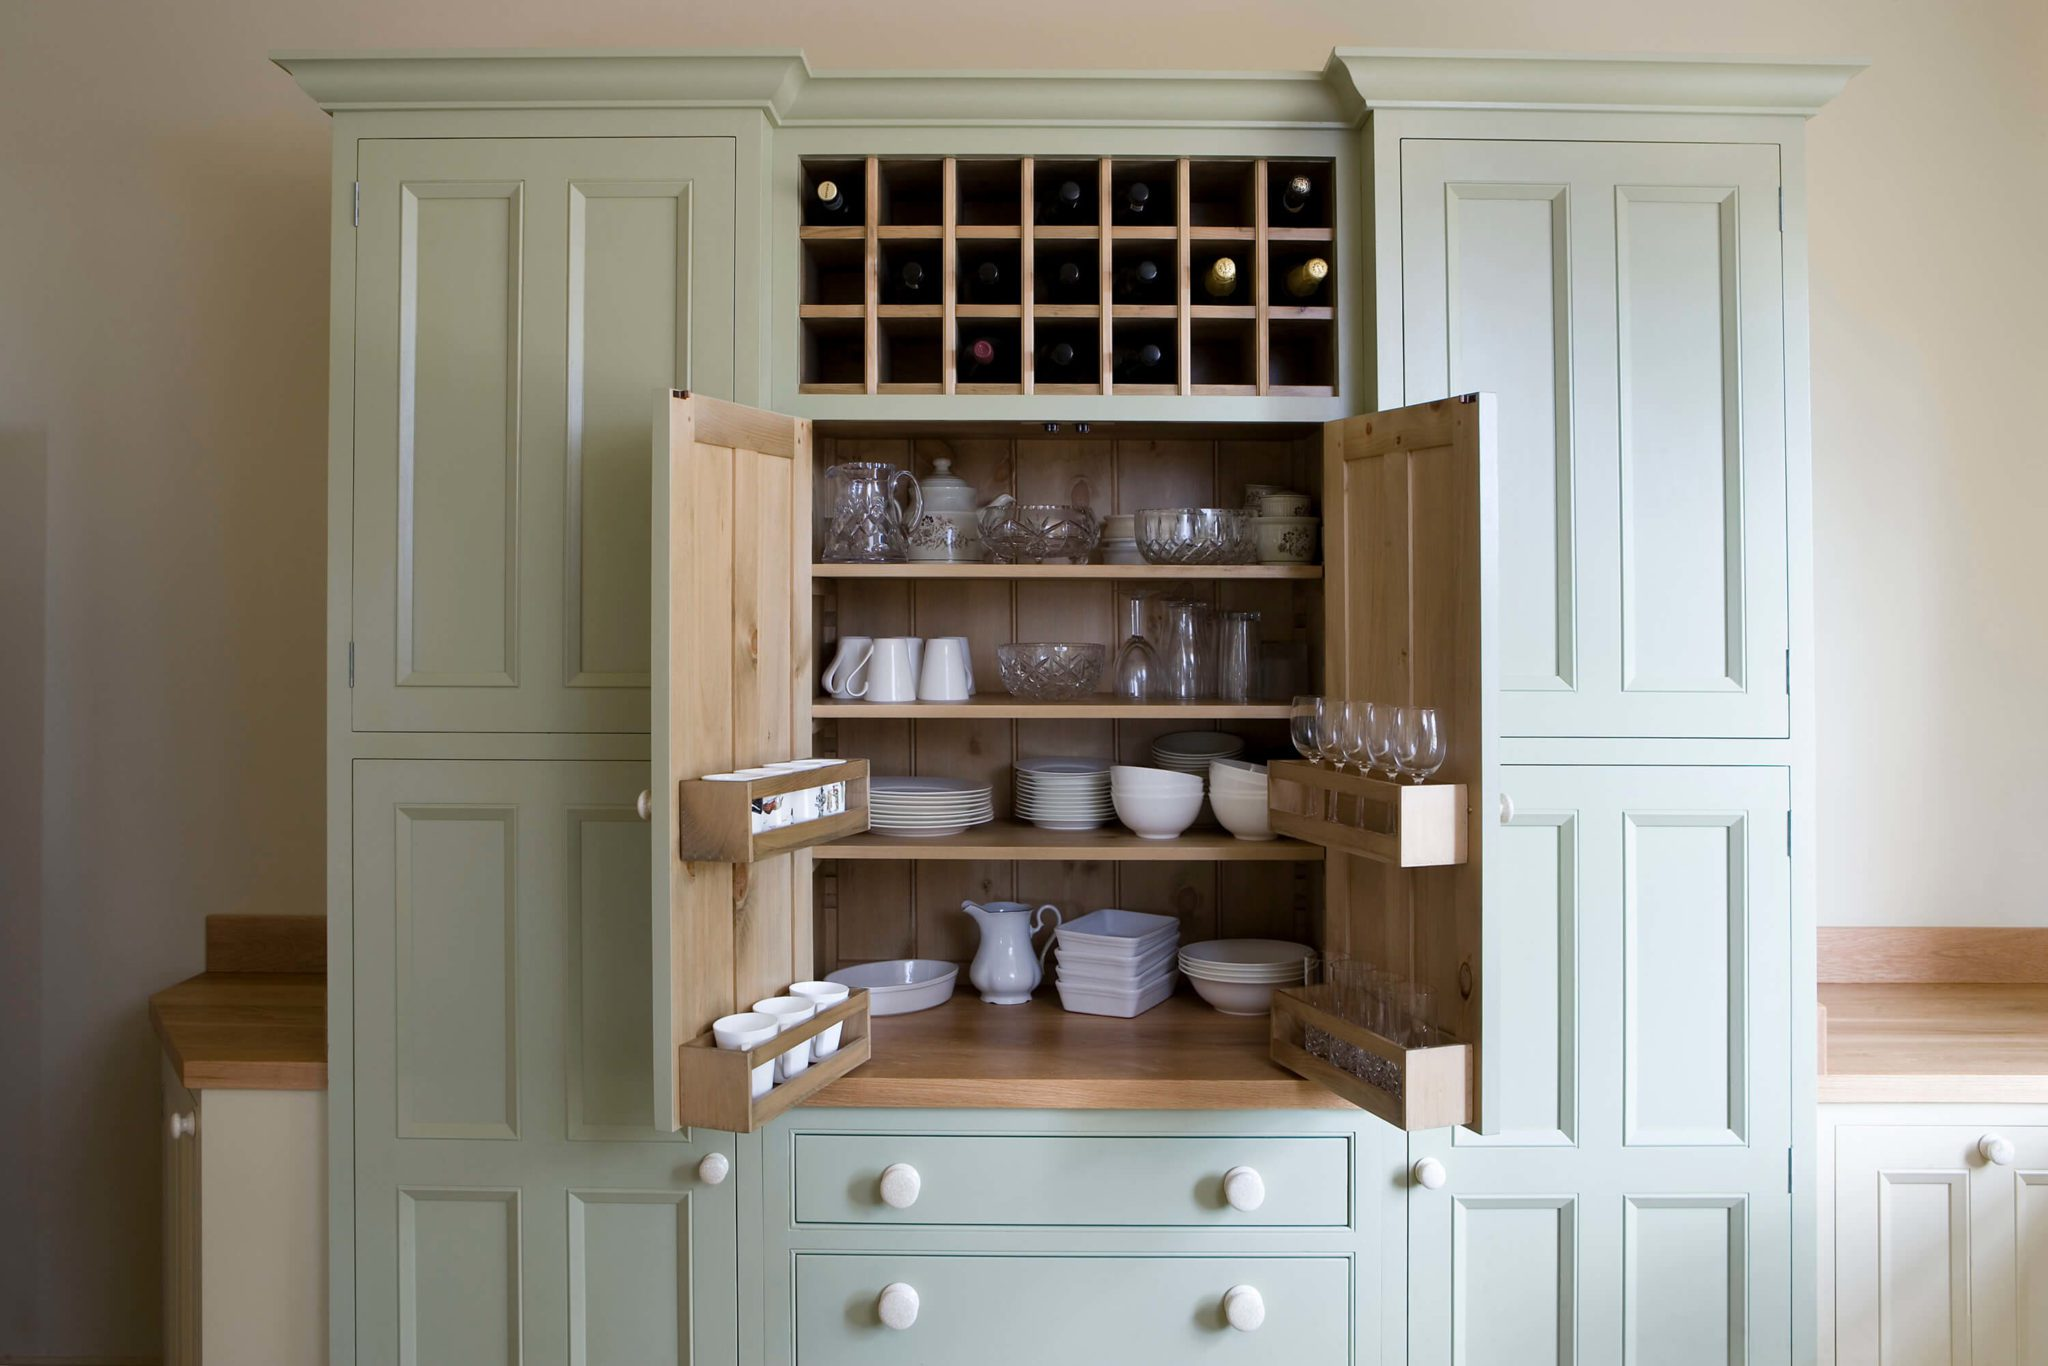 Furniture from bespoke luxury kitchen company - Hill Farm Furniture